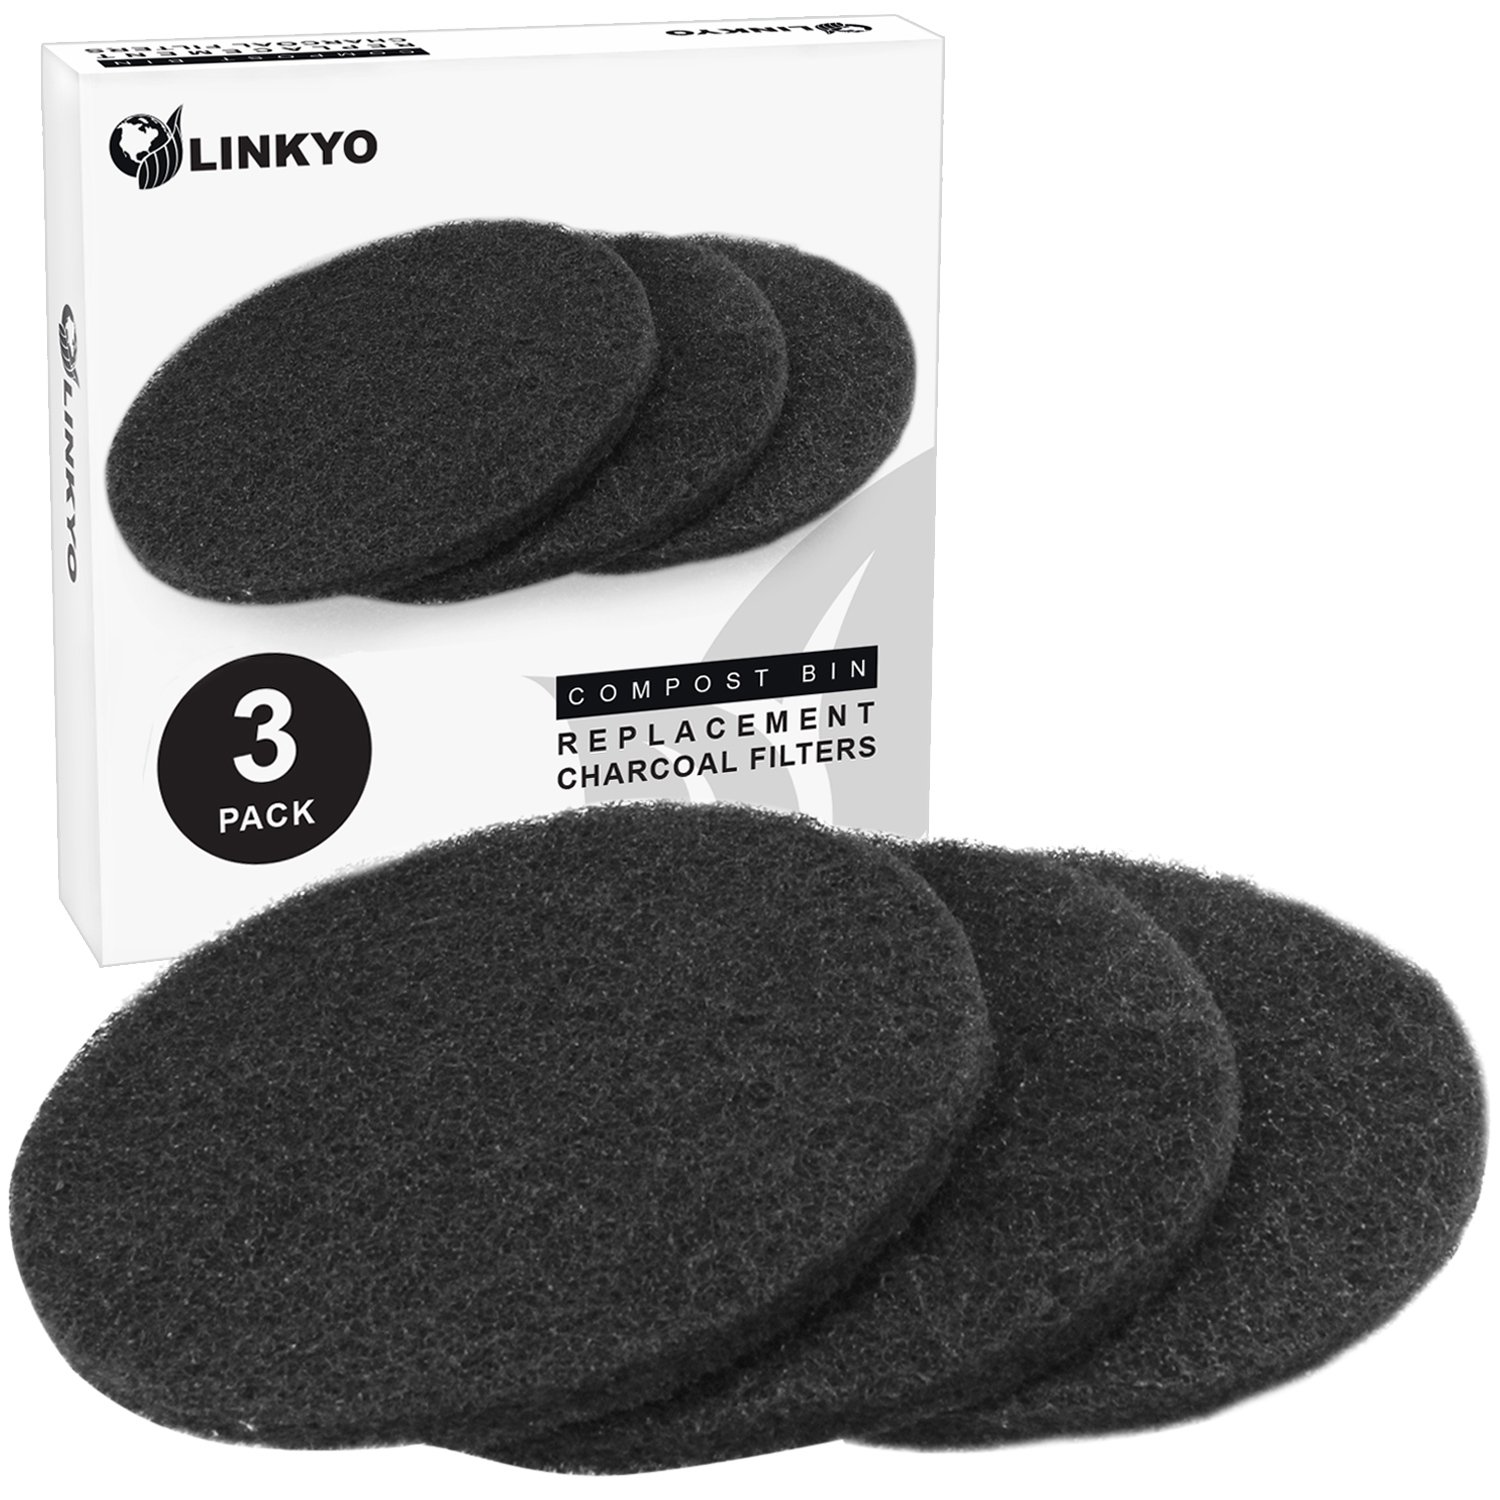 LINKYO Activated Carbon Compost Bin Filter Refill Pack - Set of 3 Odor Absorbing Charcoal Filters